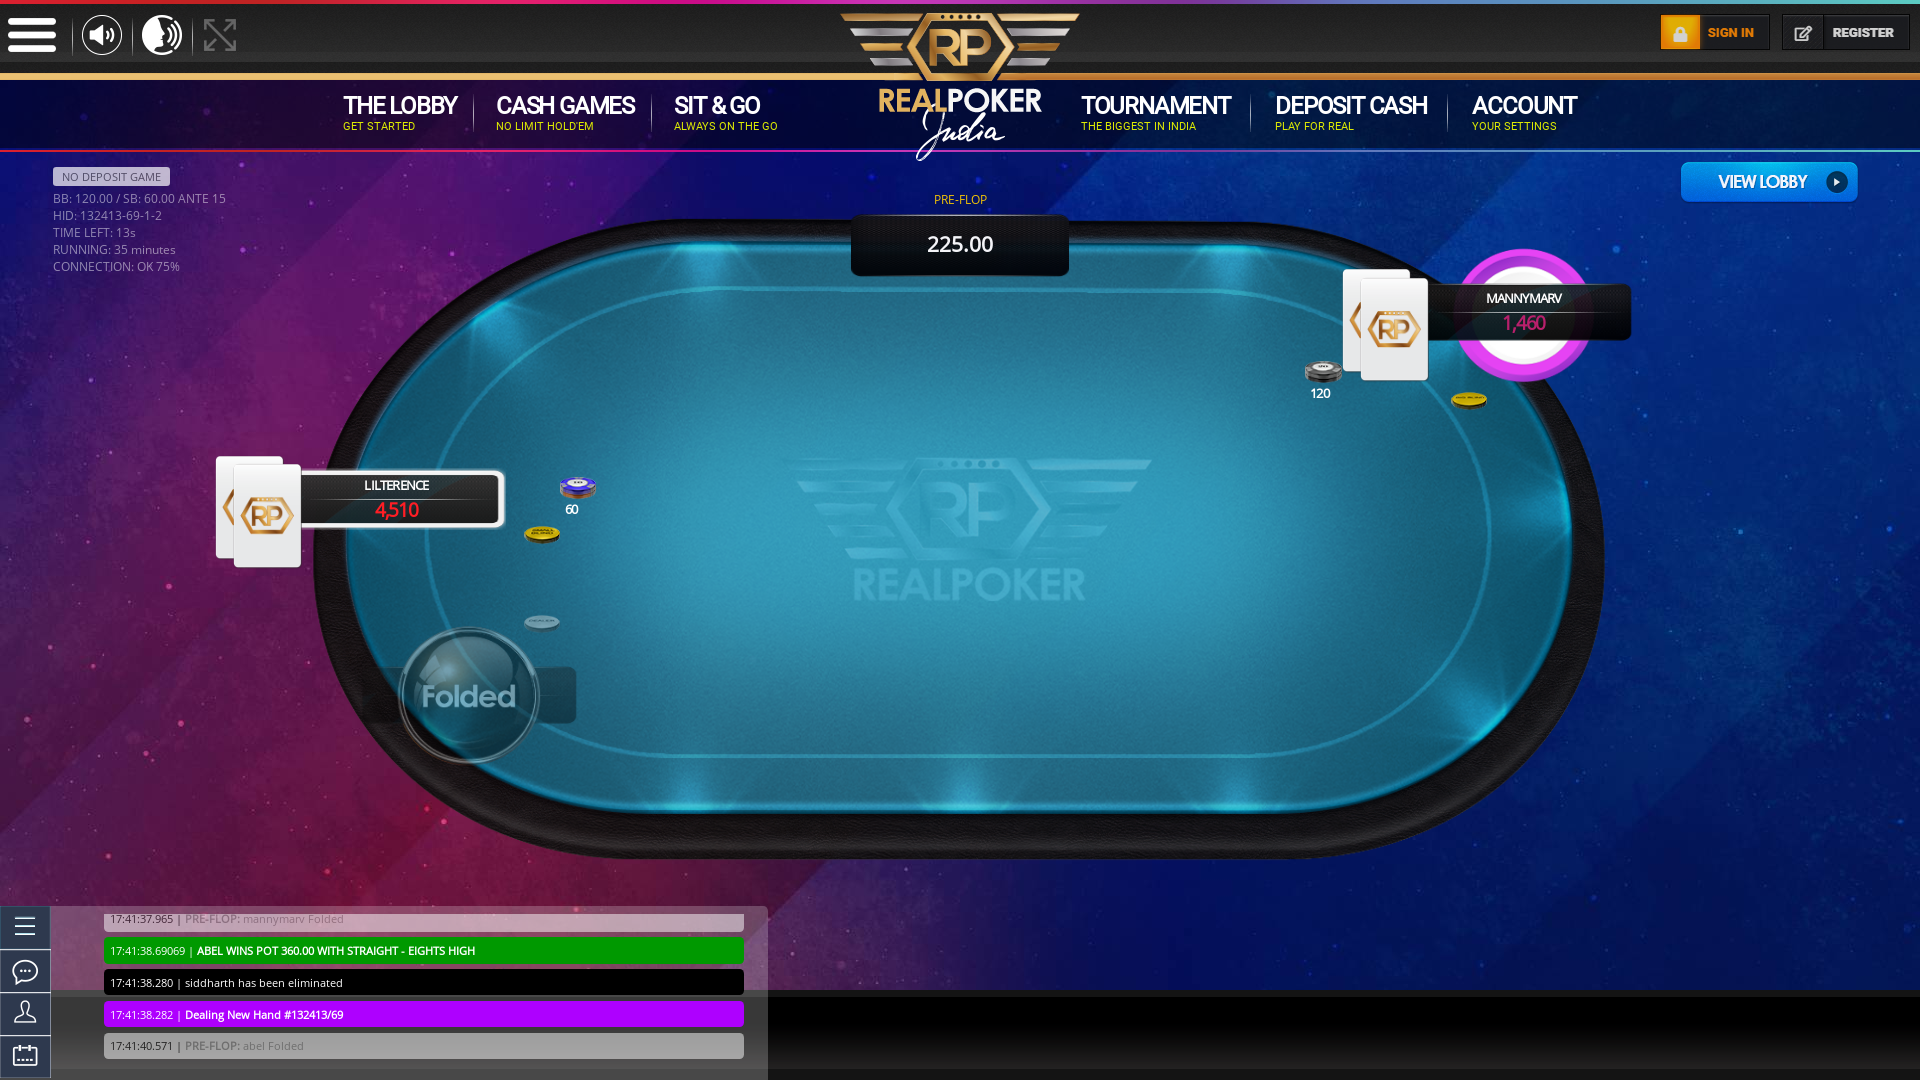 Online poker on a 10 player table in the 35th minute match up